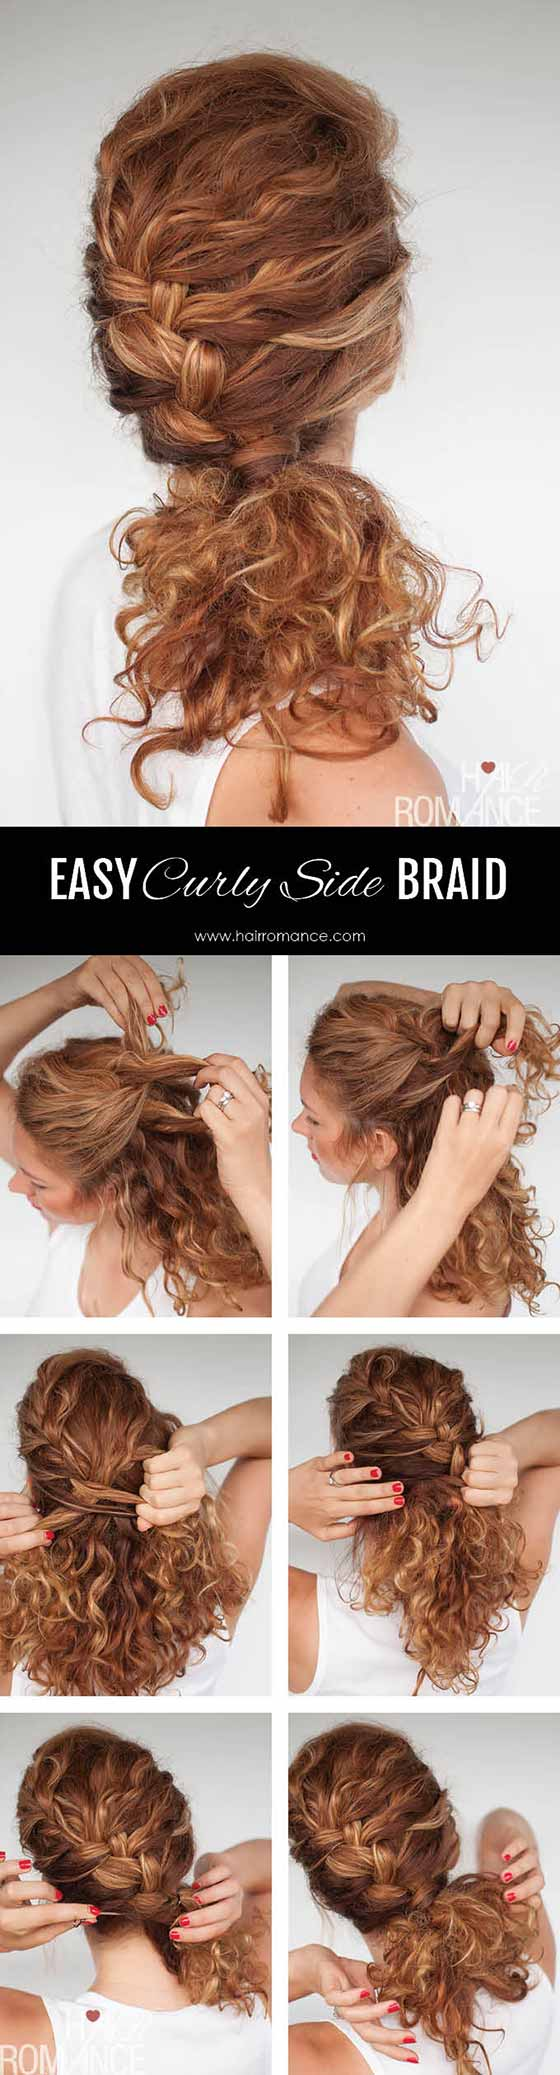 Easy-Curly-Side-Braid